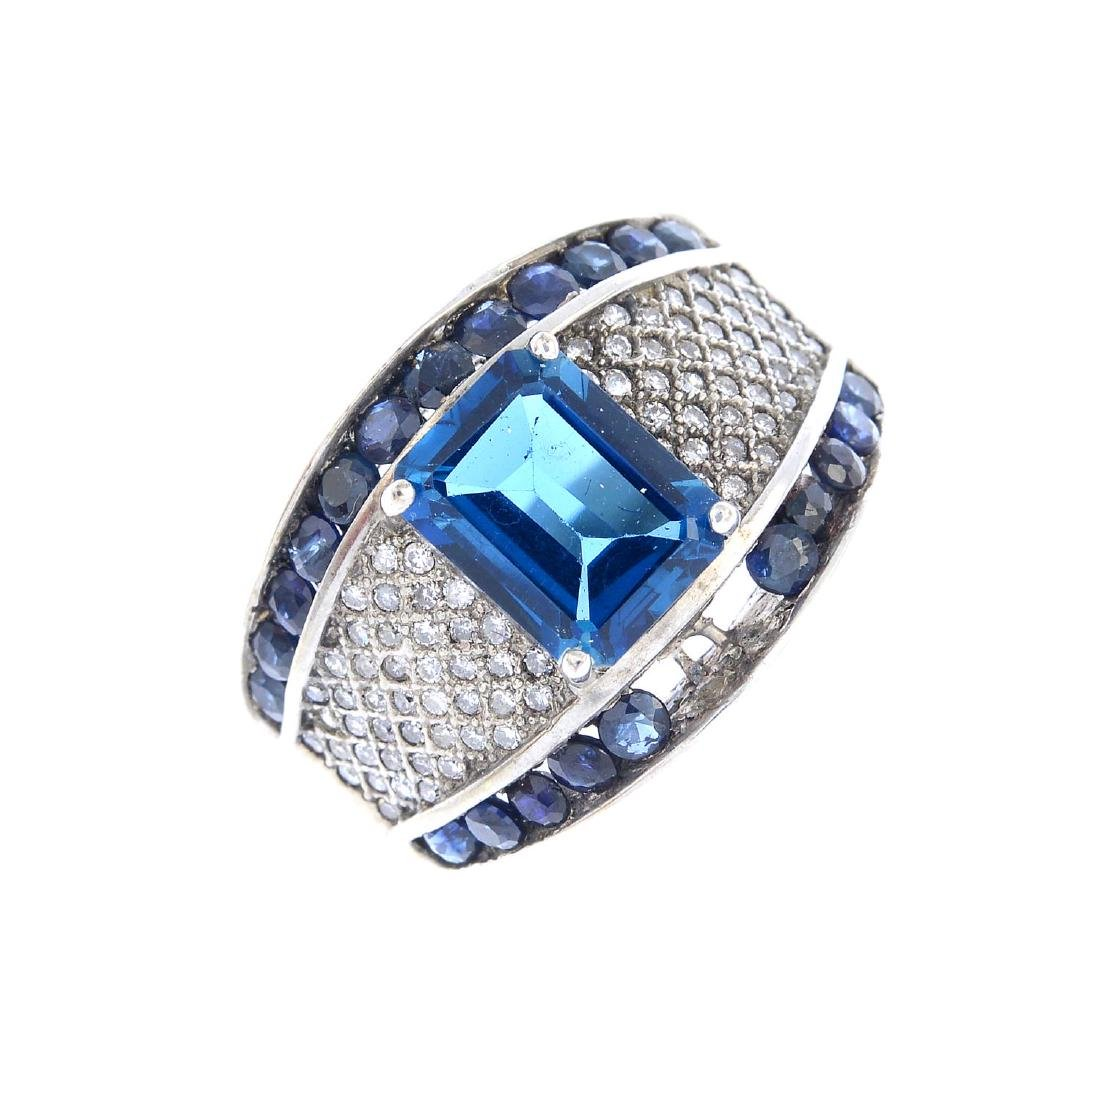 A topaz, sapphire and diamond dress ring. The